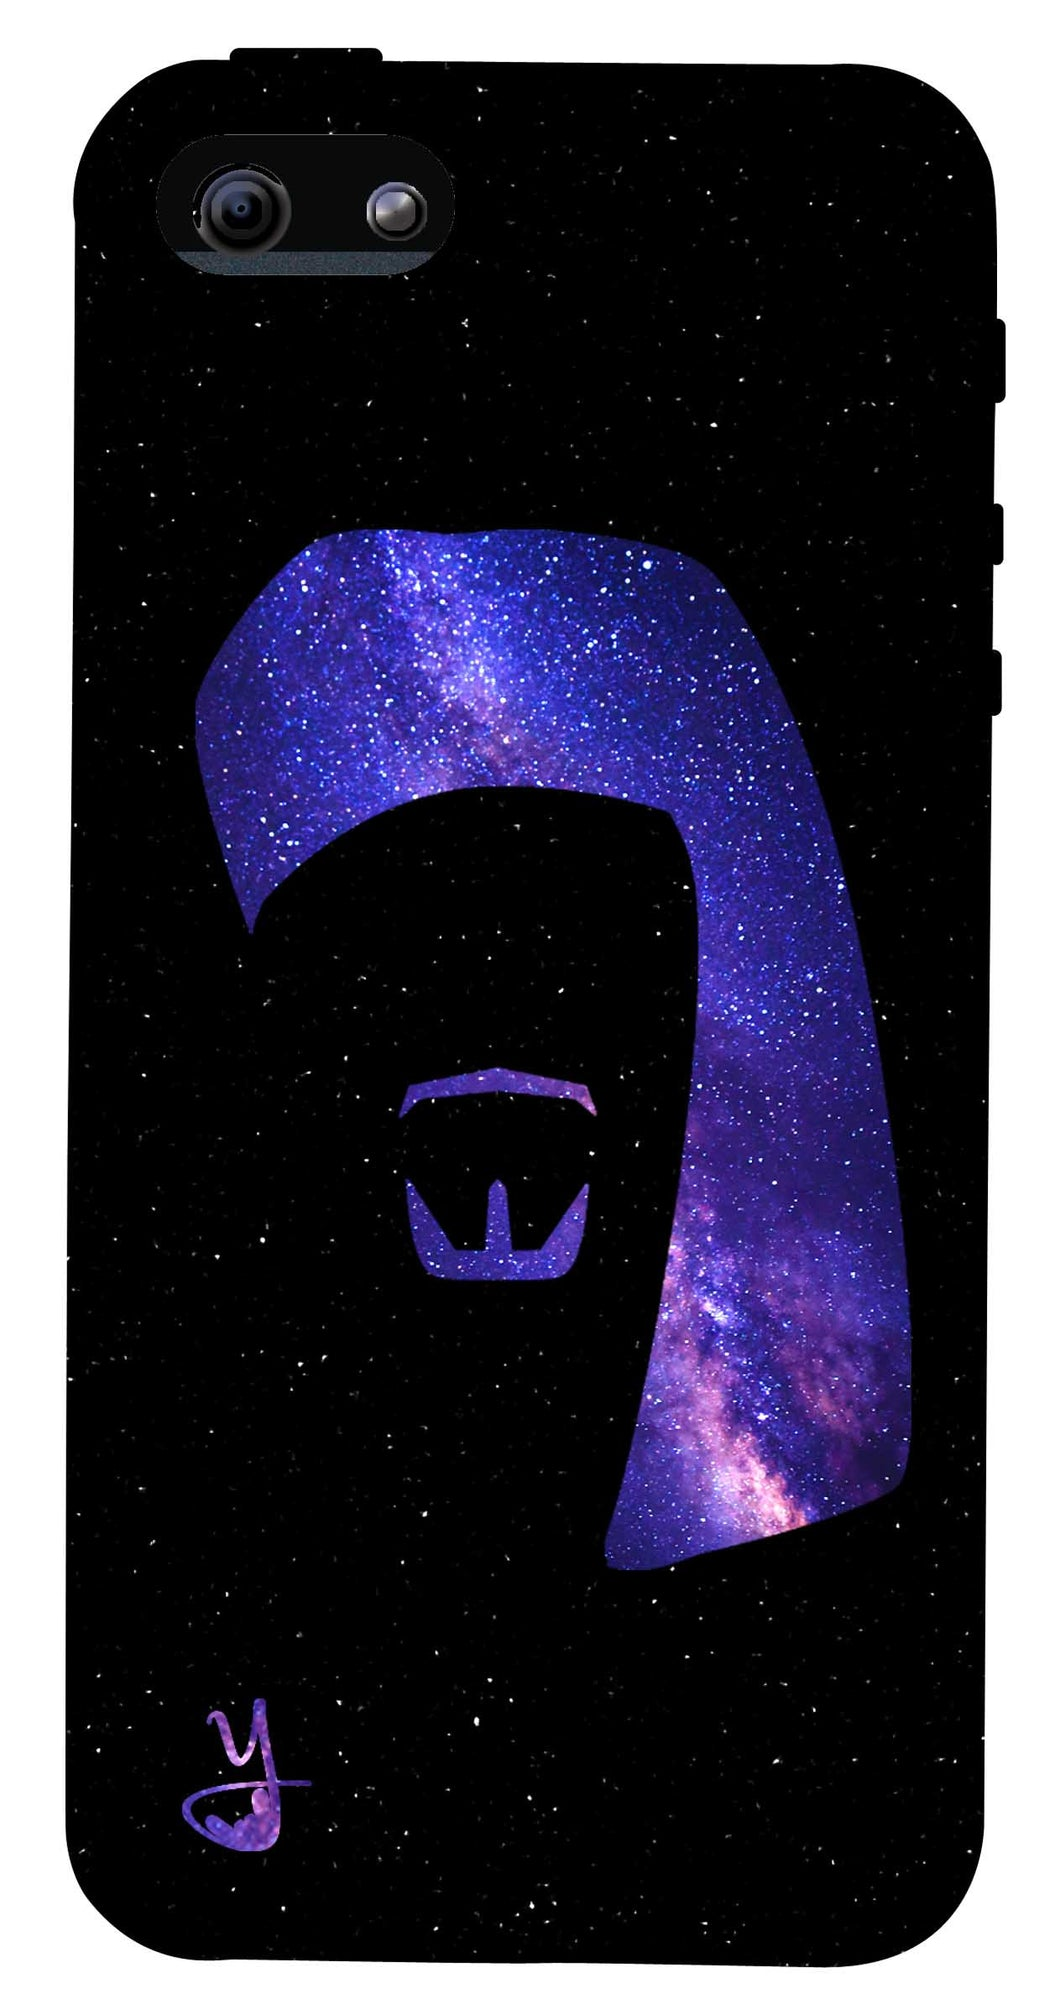 Mr. Hola Galaxy Edition for I Phone 5/5s